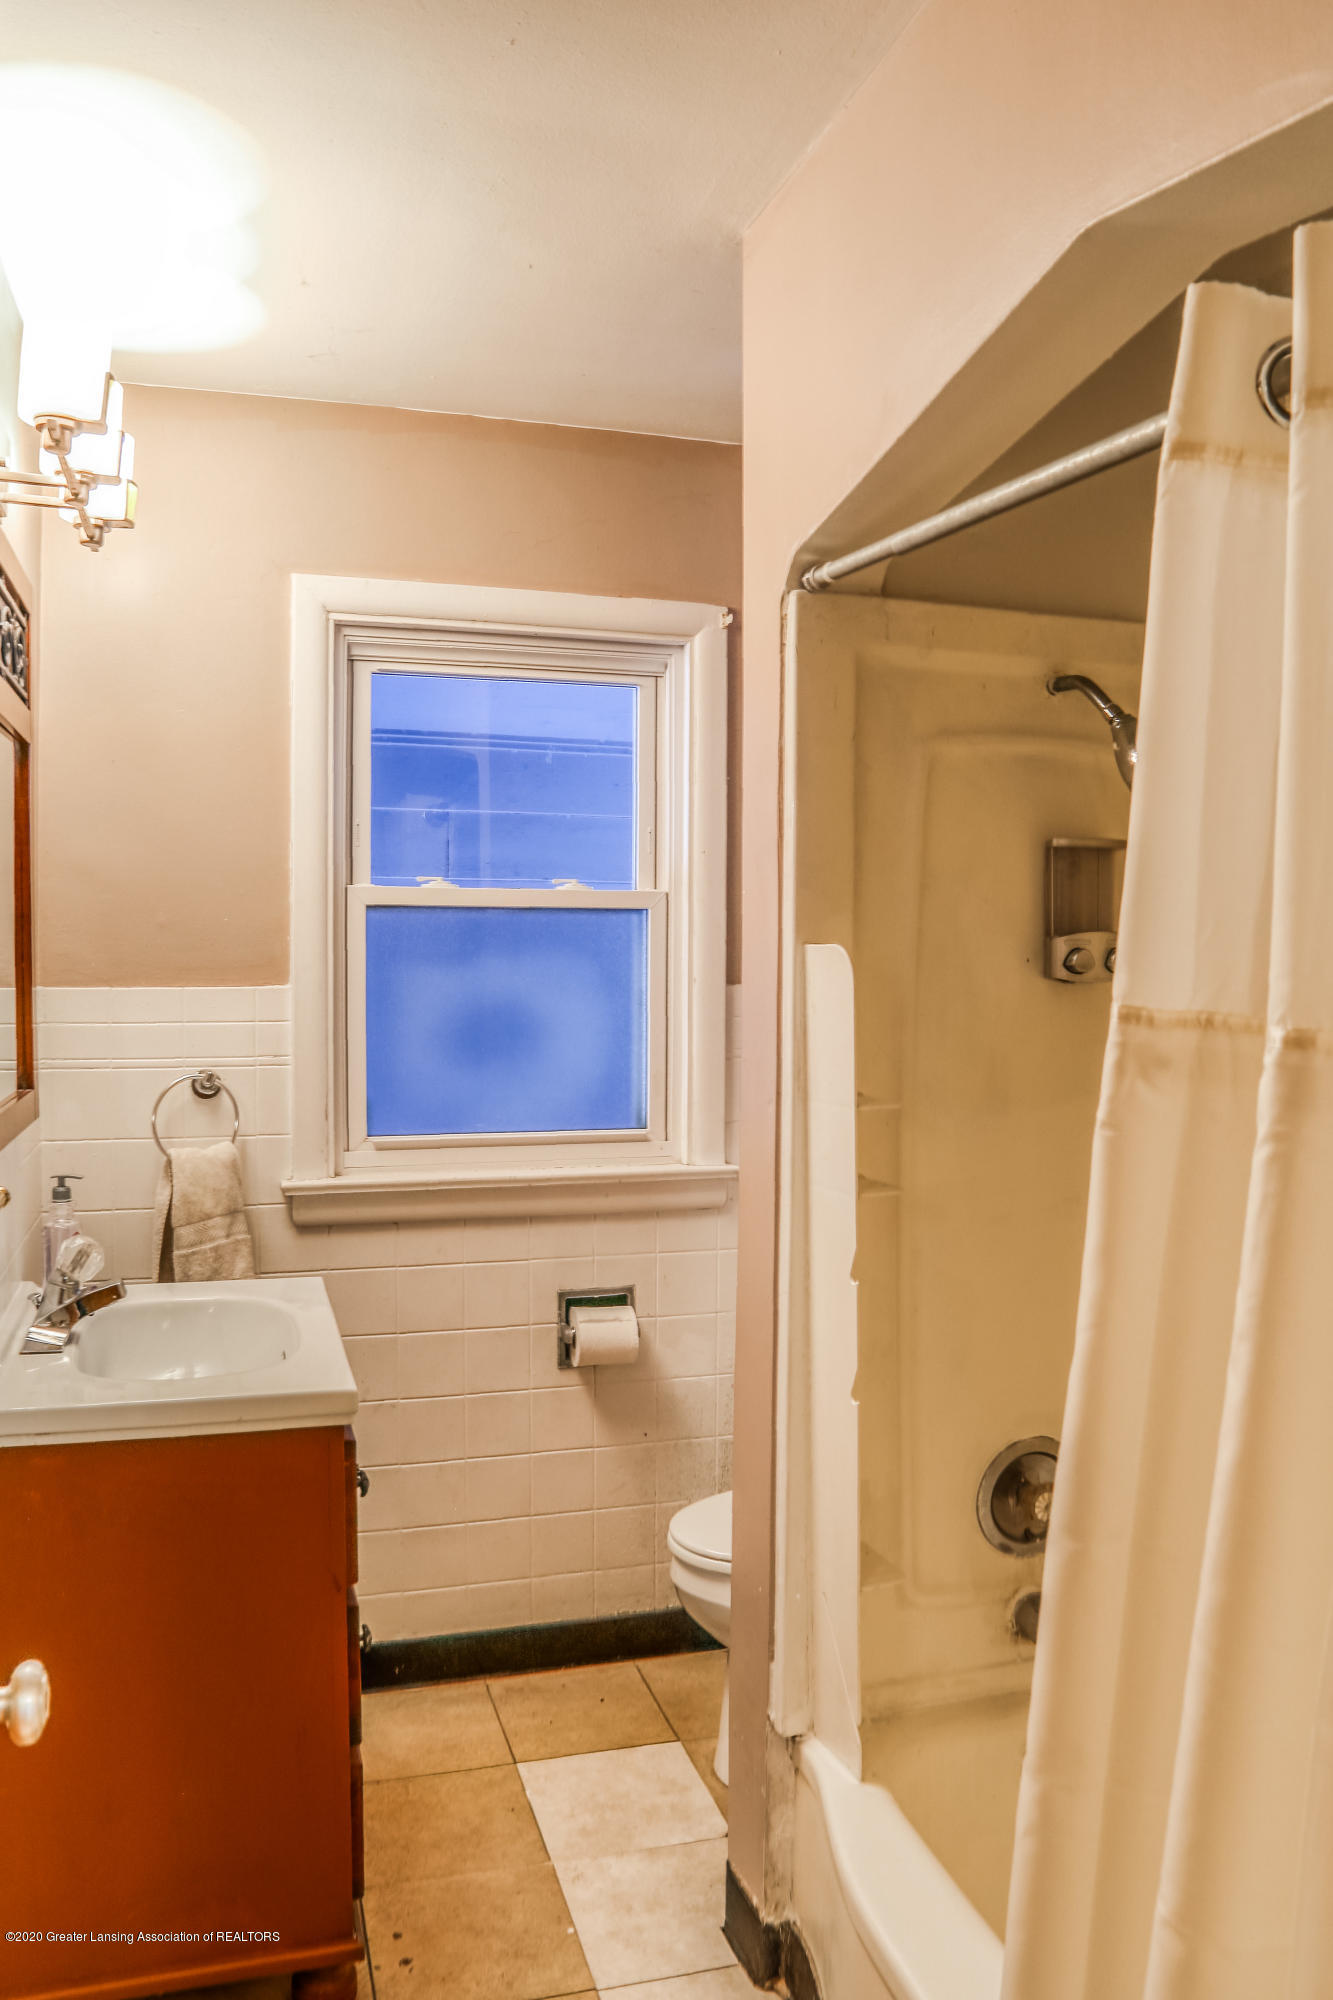 234 N Hagadorn Rd - bathroom - 24